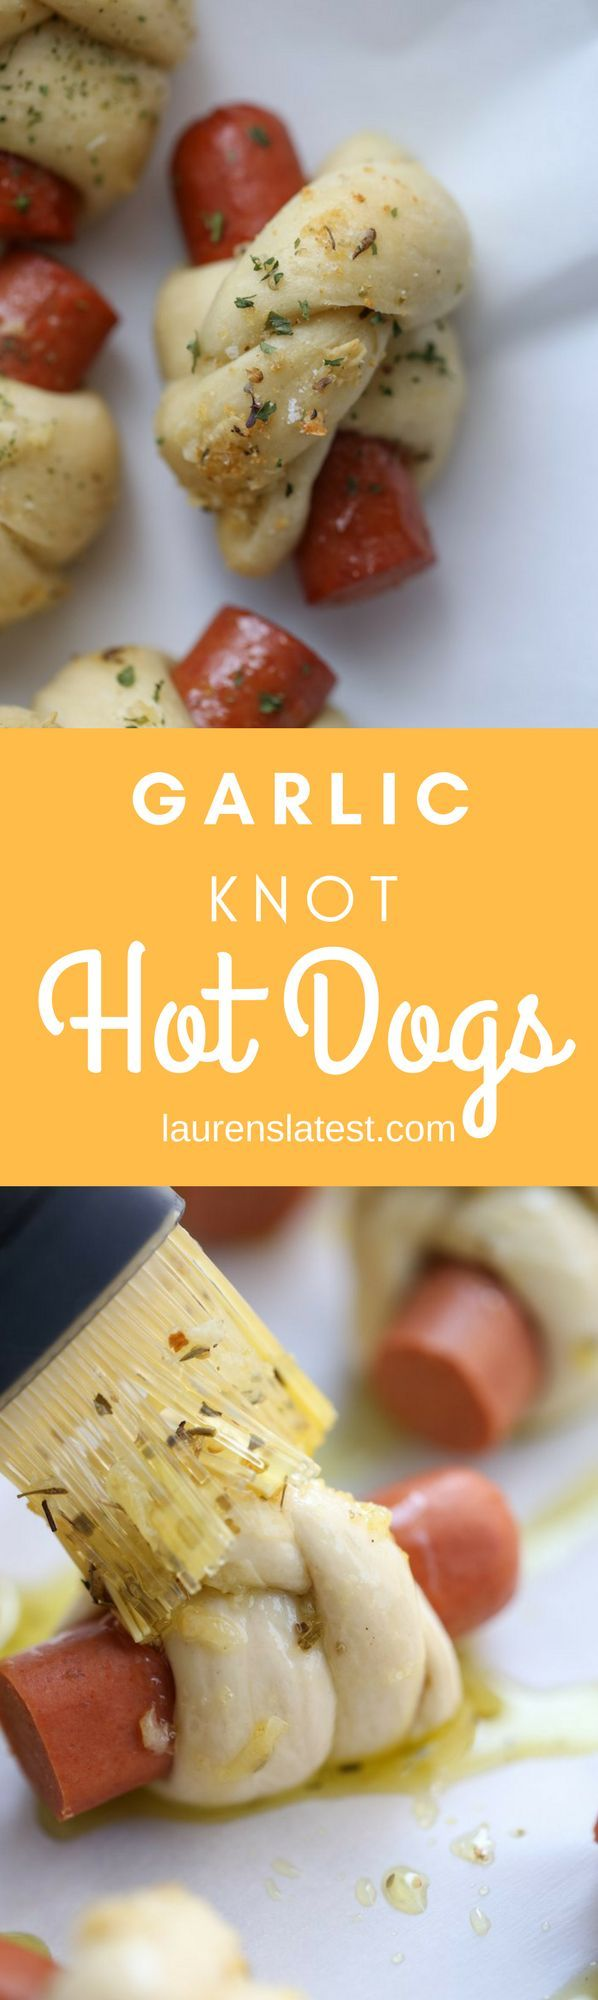 Pizza dough wrapped around a hot dog, tied into a knot and brushed with garlic olive oil…garlic knot hot dogs! What's not to like? #hebrewnational #ad #WeRemainStrict